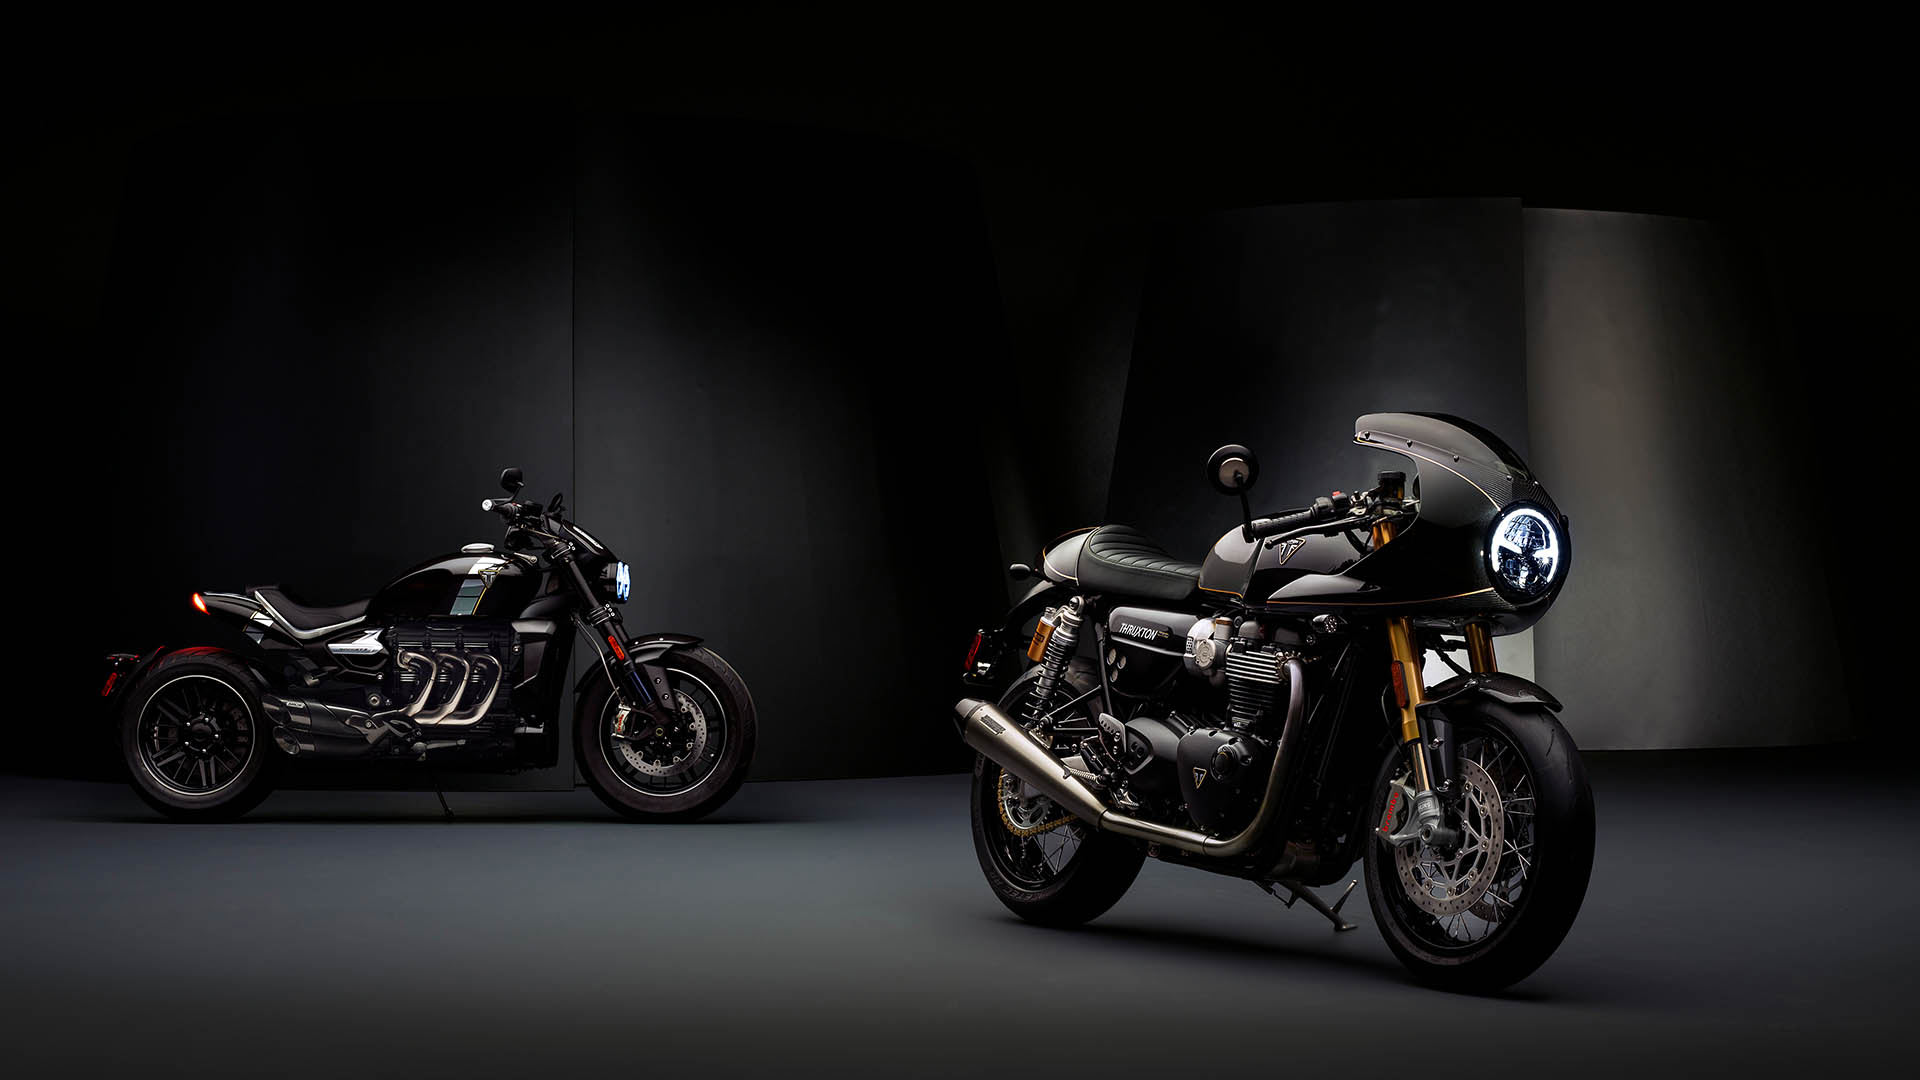 Beautiful angled shot of both the Rocket 3 TFC and Thruxton TFC